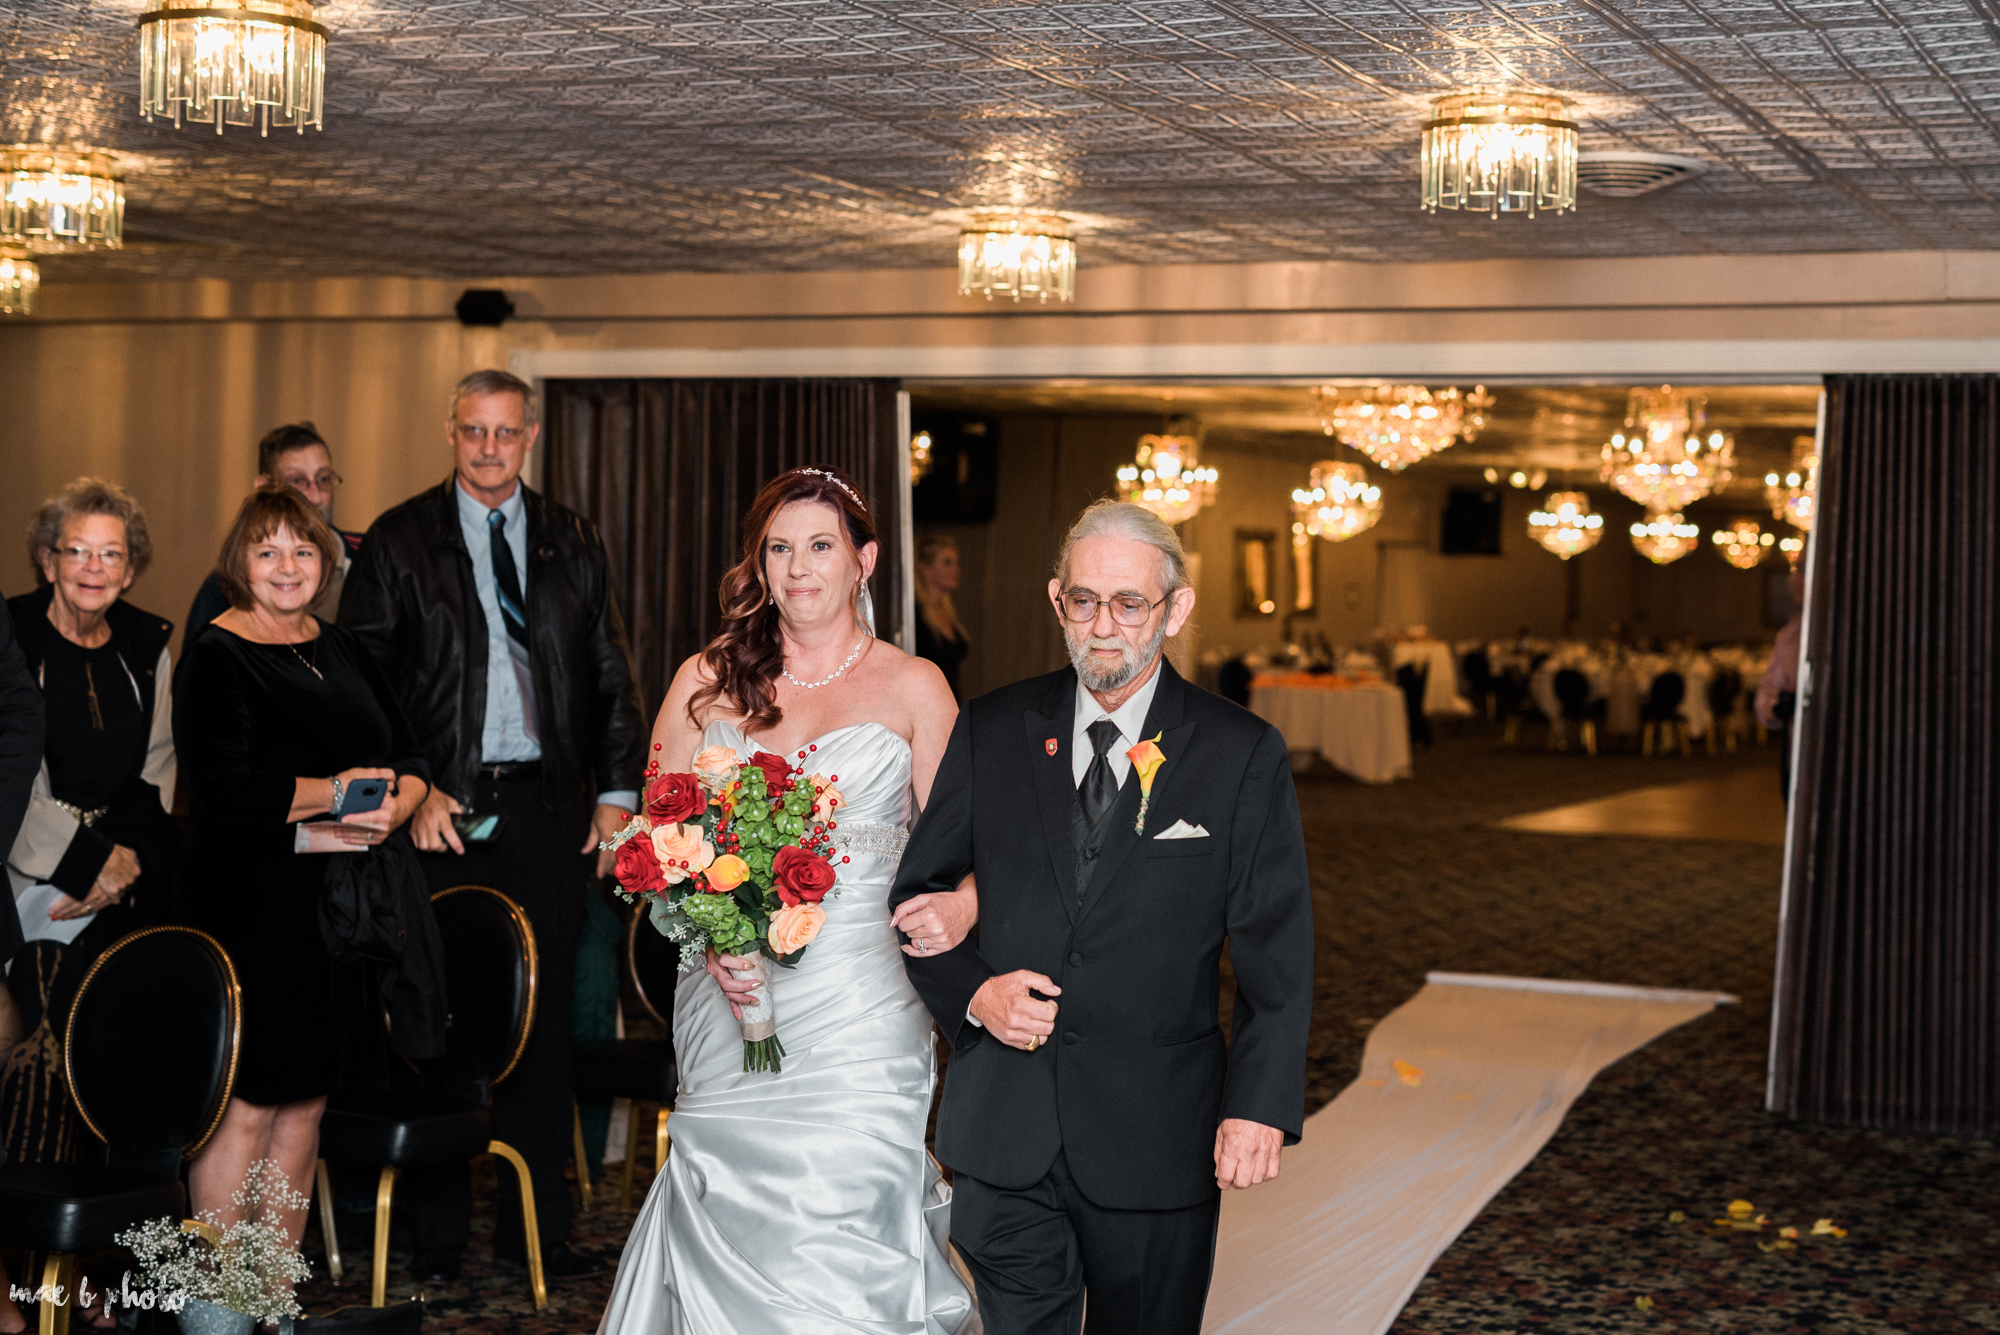 tracey and aaron's personal fall wedding at tiffany's banquet center in brookfield ohio-40.jpg